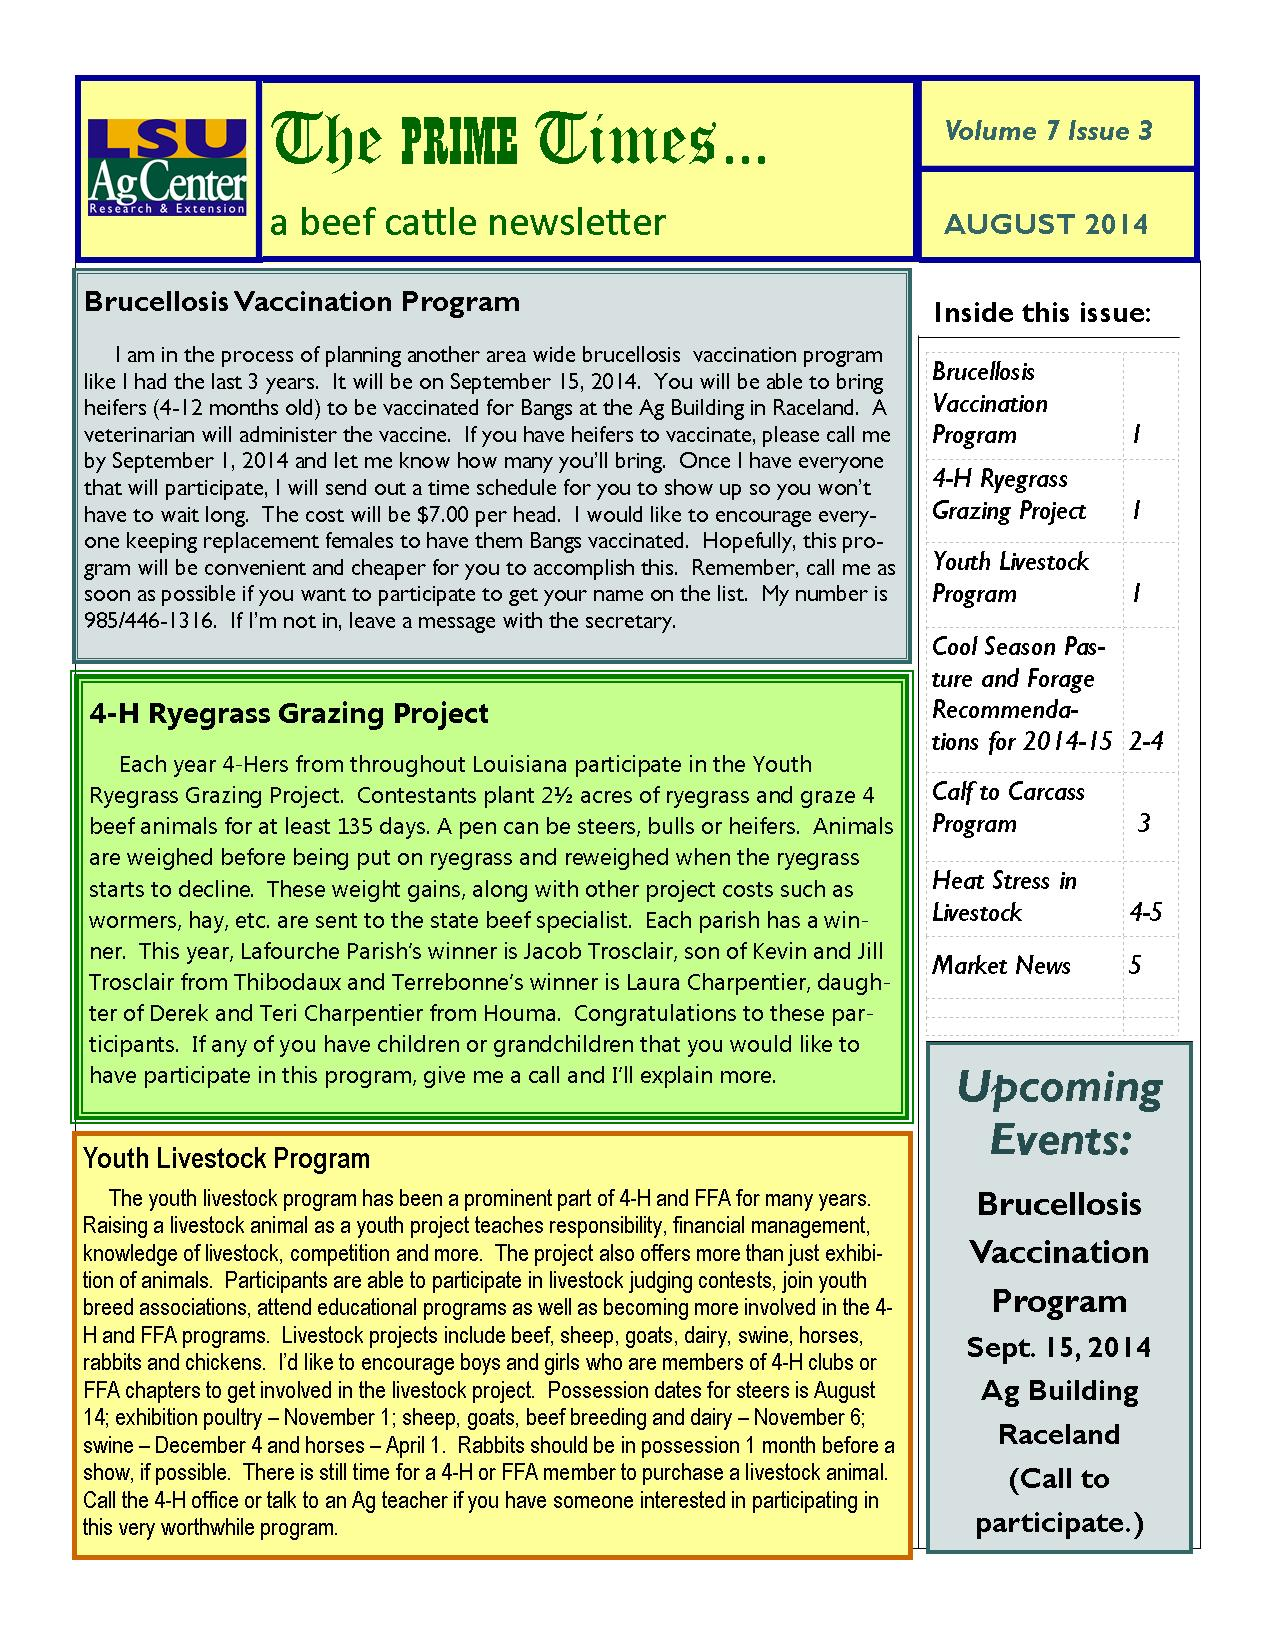 August 2014 Beef Cattle Newsletter